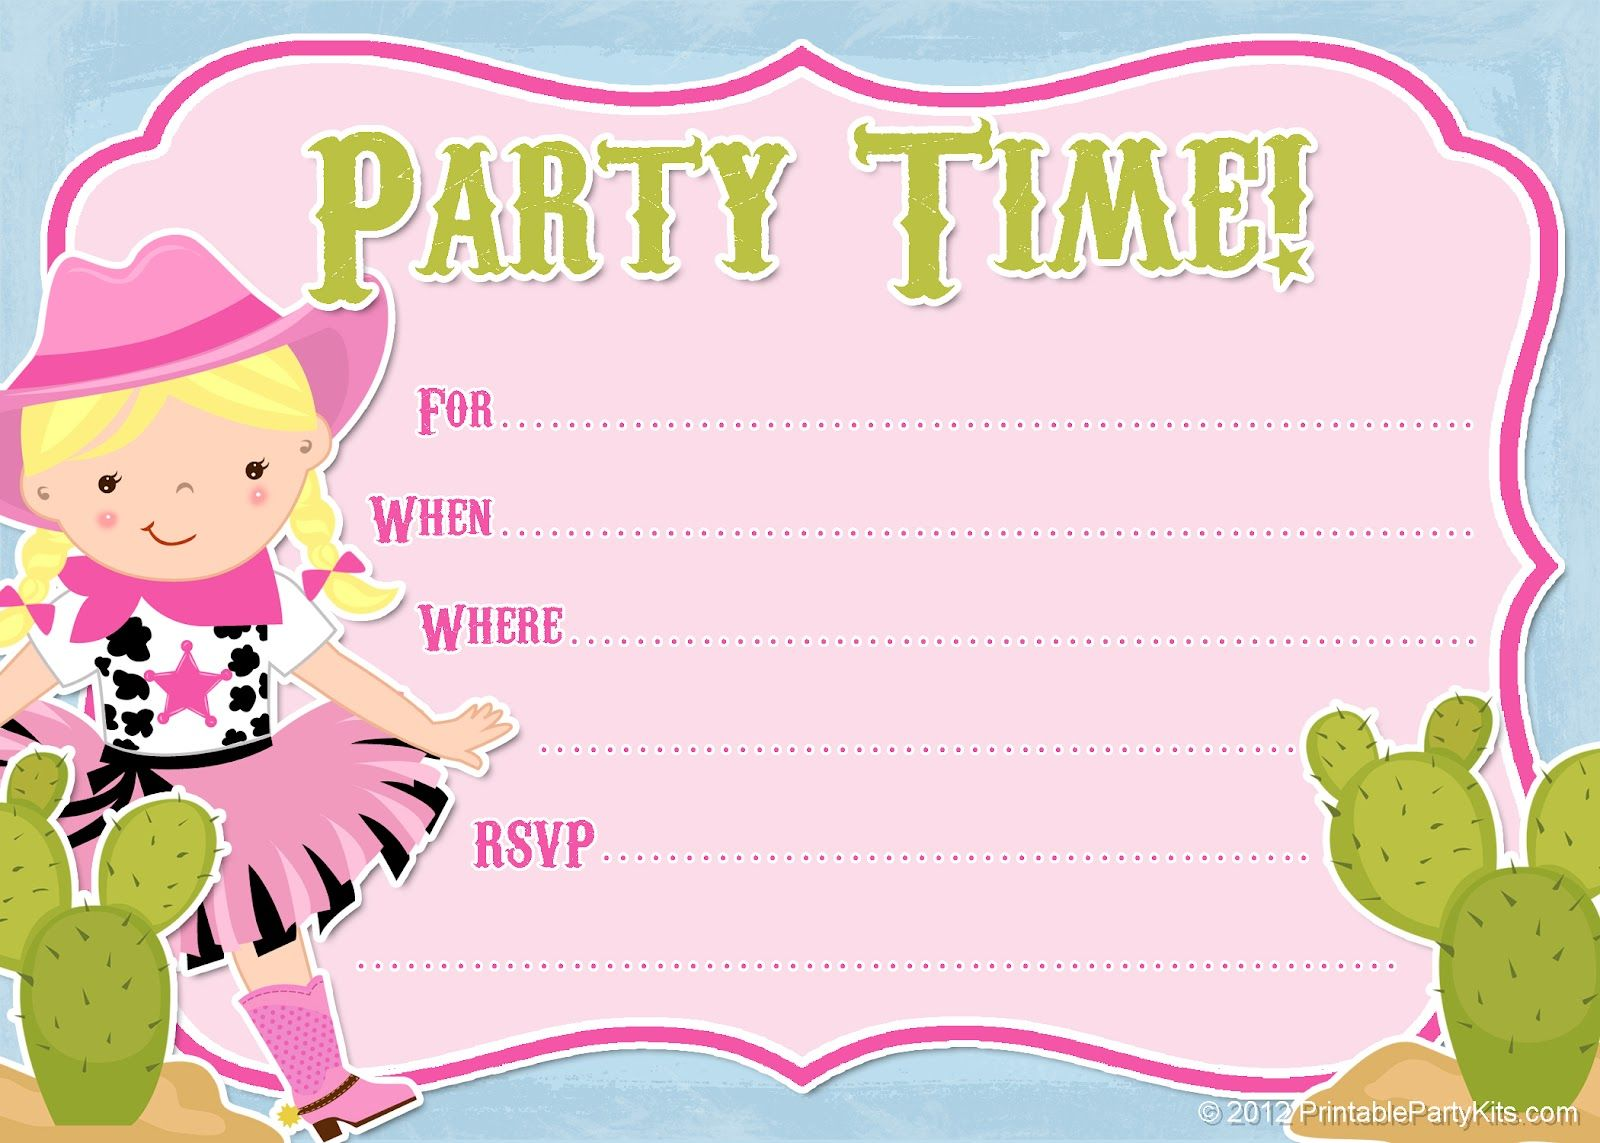 Free printable cowgirl party invitation from free printable cowgirl invitation from printablepartyinv filmwisefo Images